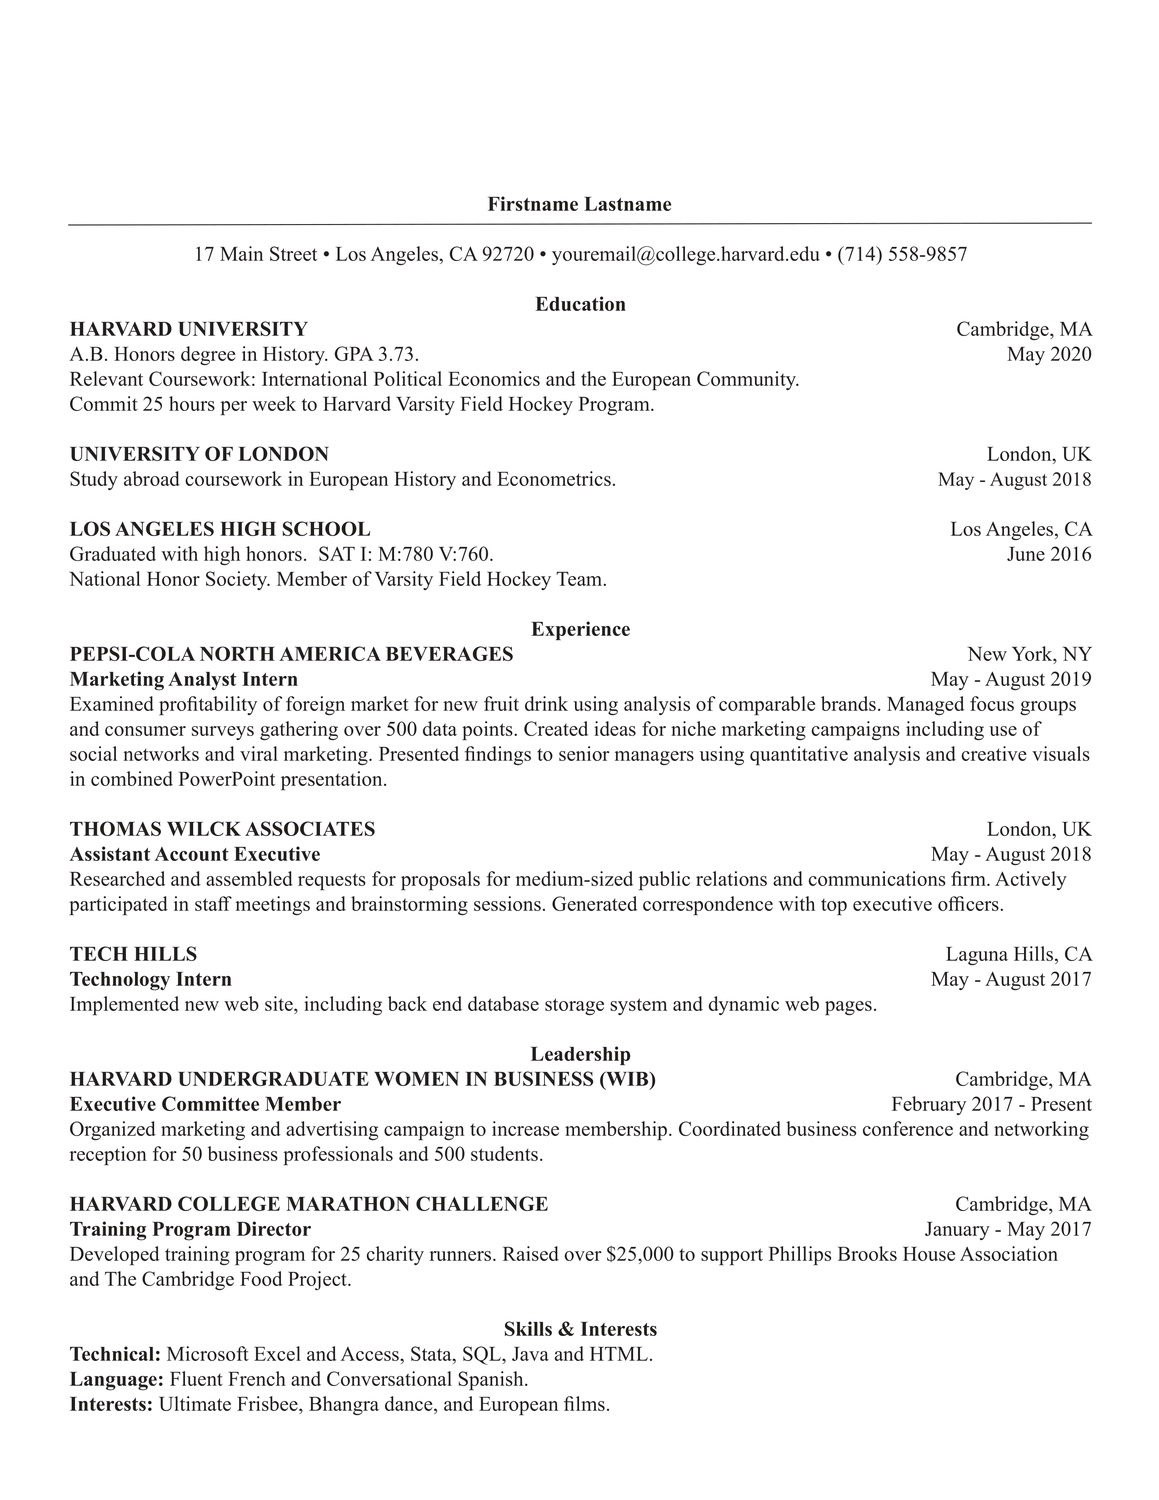 the harvard guide to your job search sponsored crimson brand studio style resume template Resume Harvard Style Resume Template